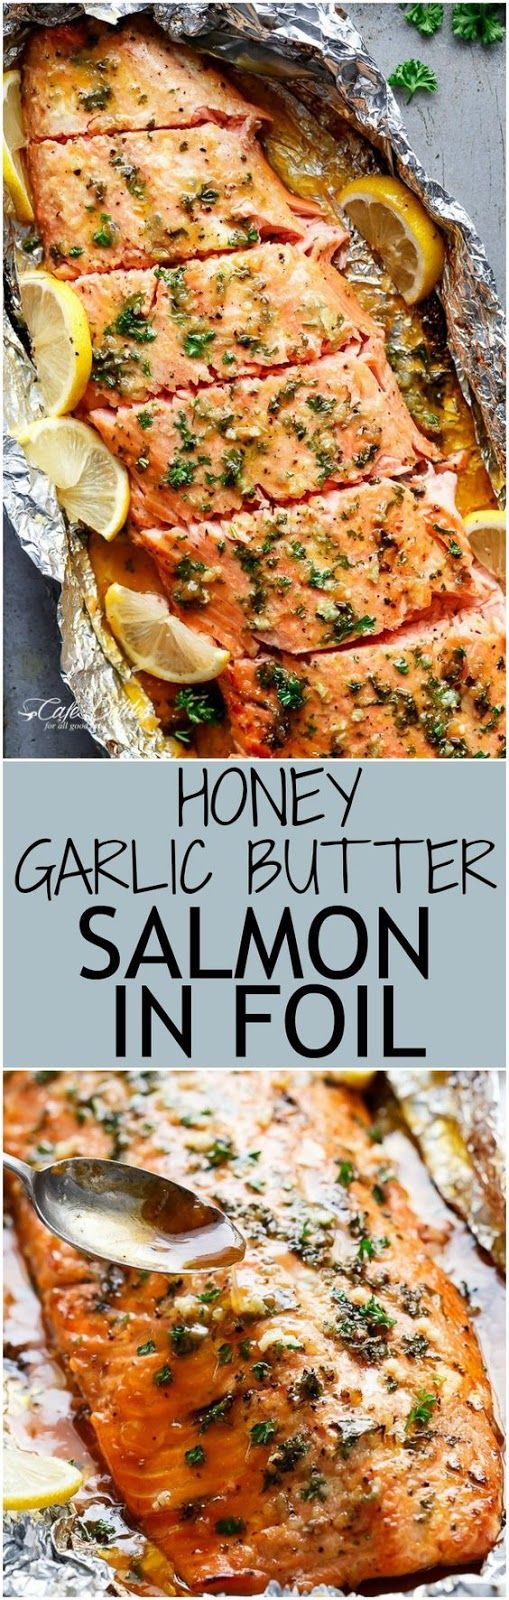 HONEY GARLIC BUTTER SALMON IN FOIL | Food And Cake Recipes